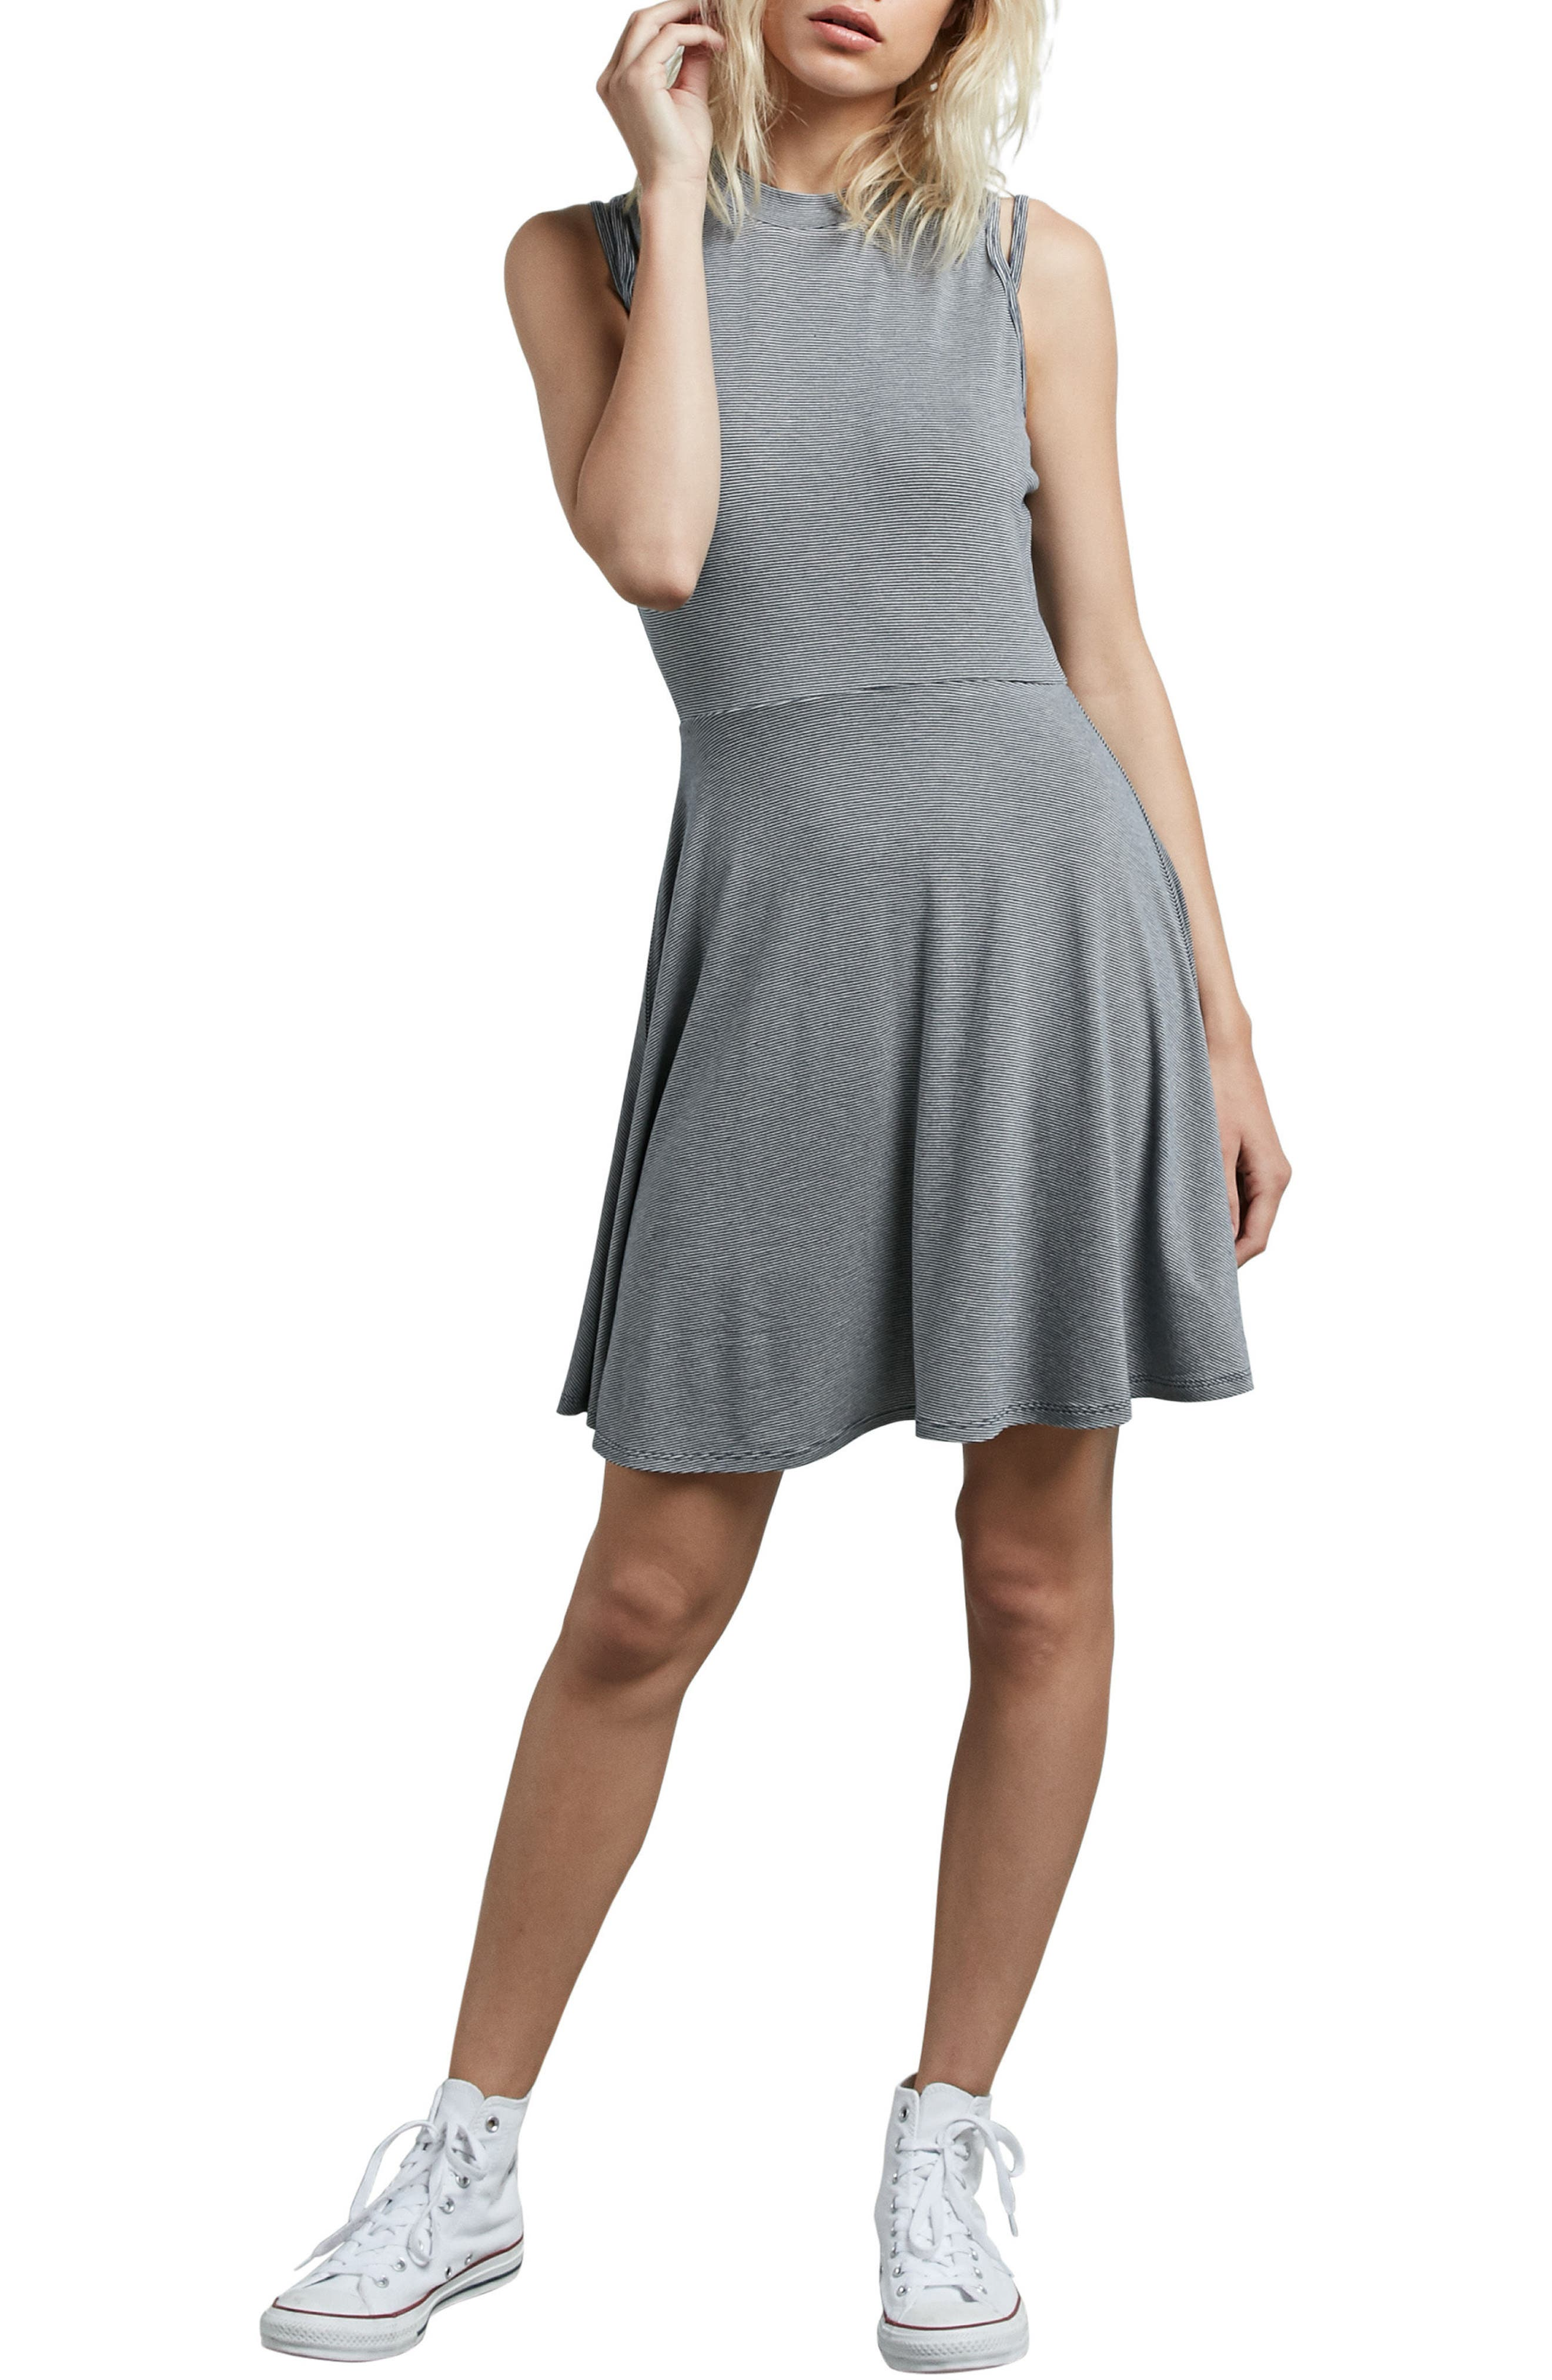 Open Arms Strappy Skater Dress,                         Main,                         color, 100